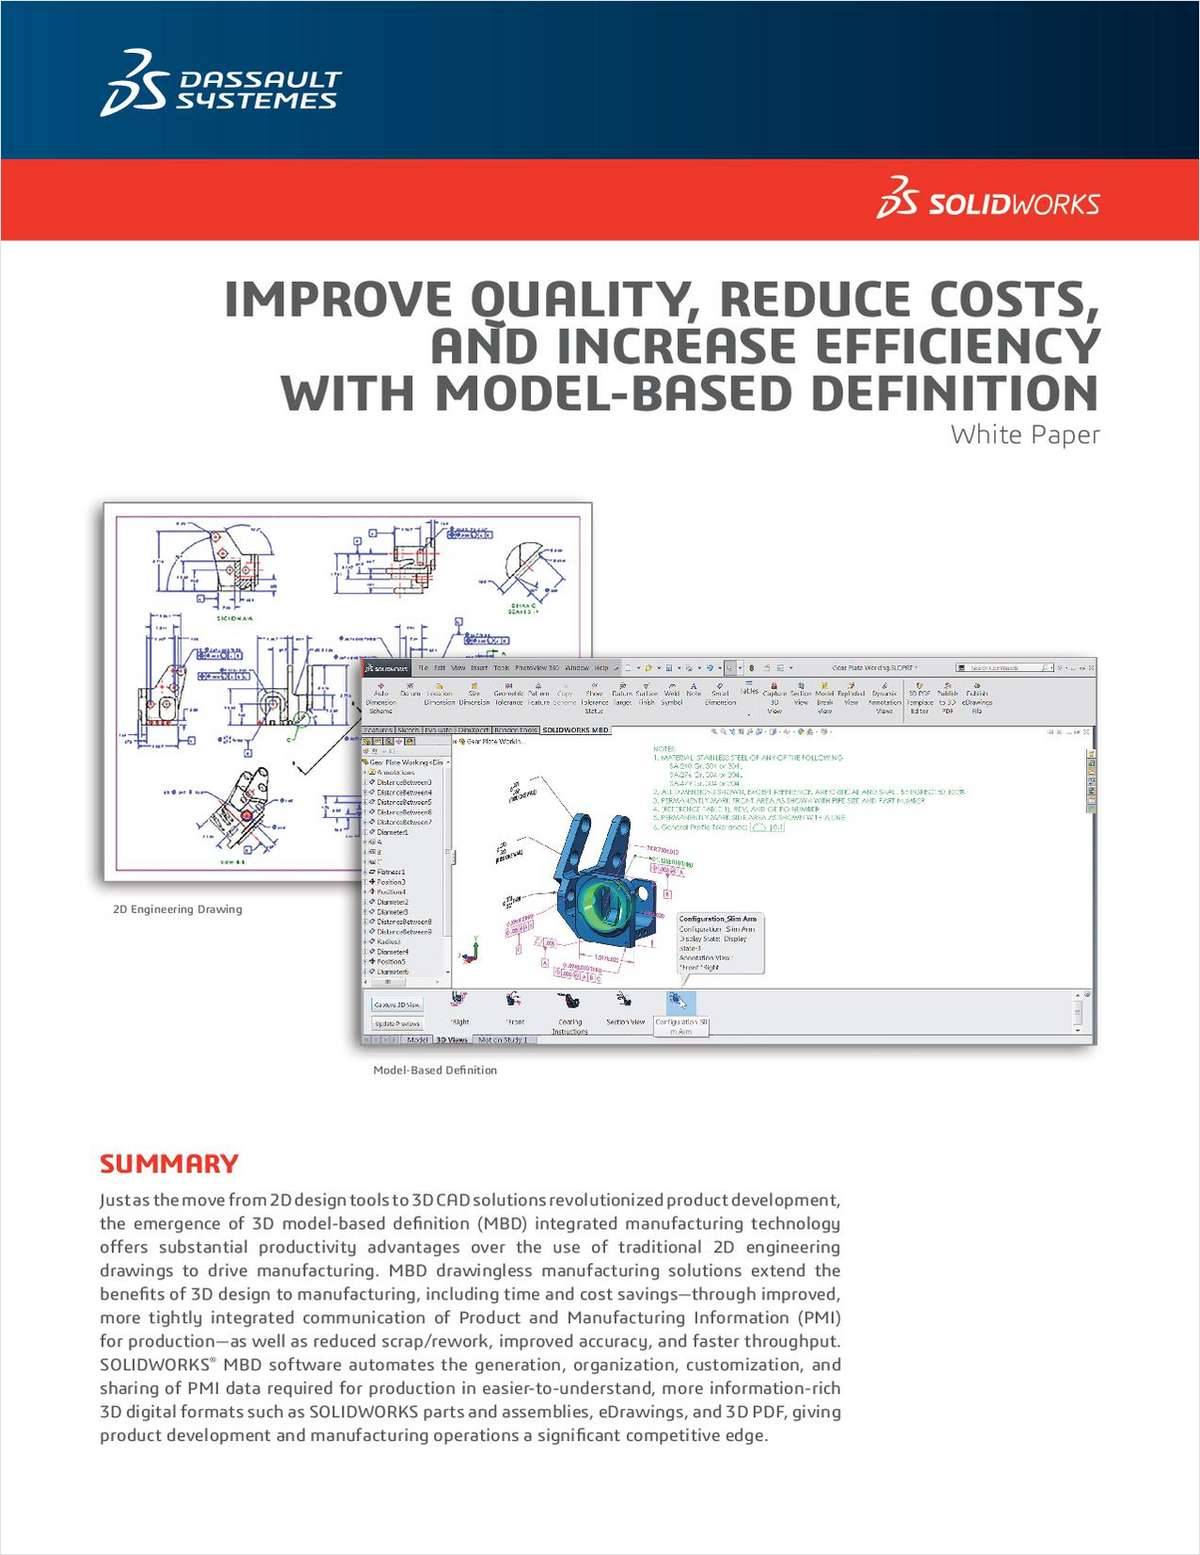 Improve Quality, Reduce Costs and Increase Efficiency with Model-Based Definition